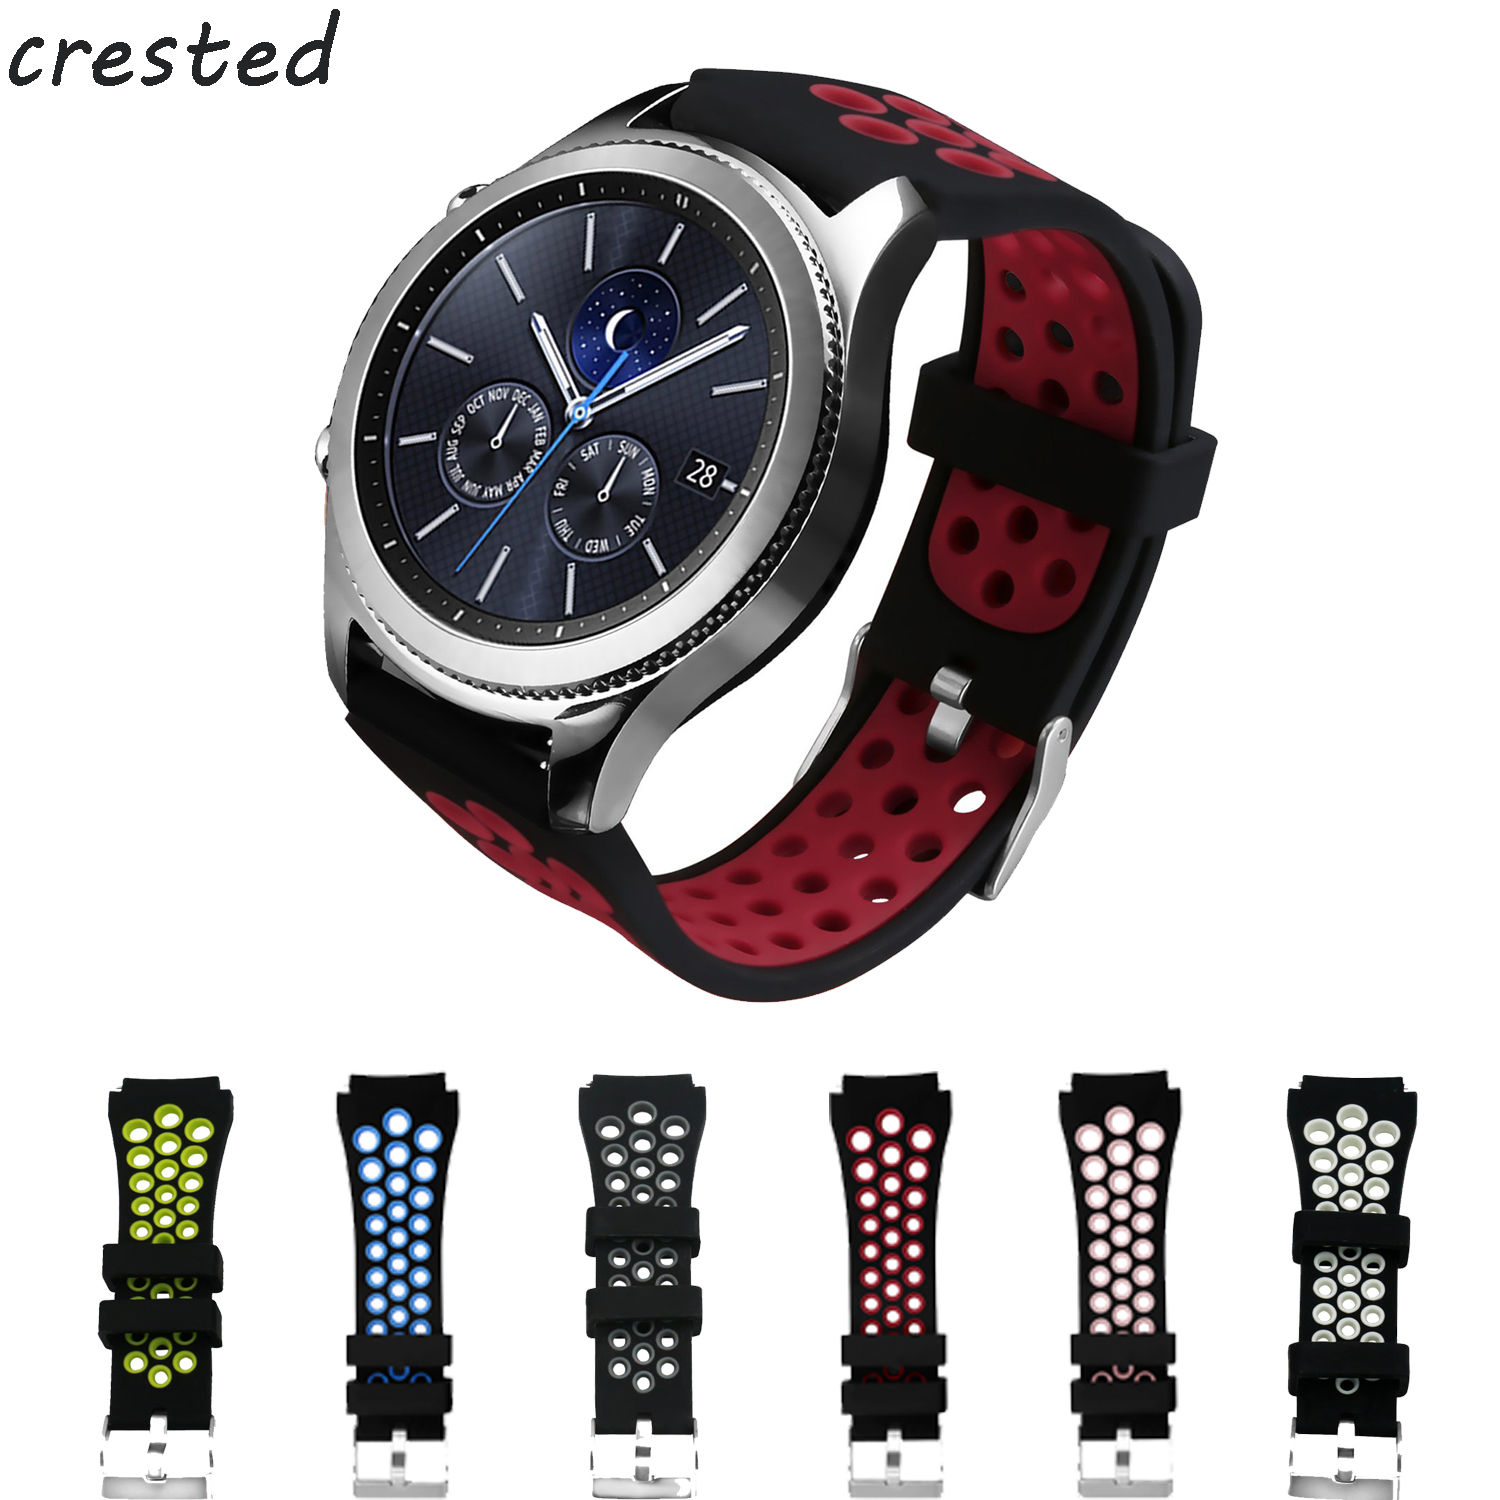 sport silicone strap for samsung gear s3 Frontier/Classic band smart watch bracelet smartwatch wrist belt replacement wristband large small size sport silicone replacement watch wrist strap bands for samsung gear fit 2 r360 watch band conjoined watch band